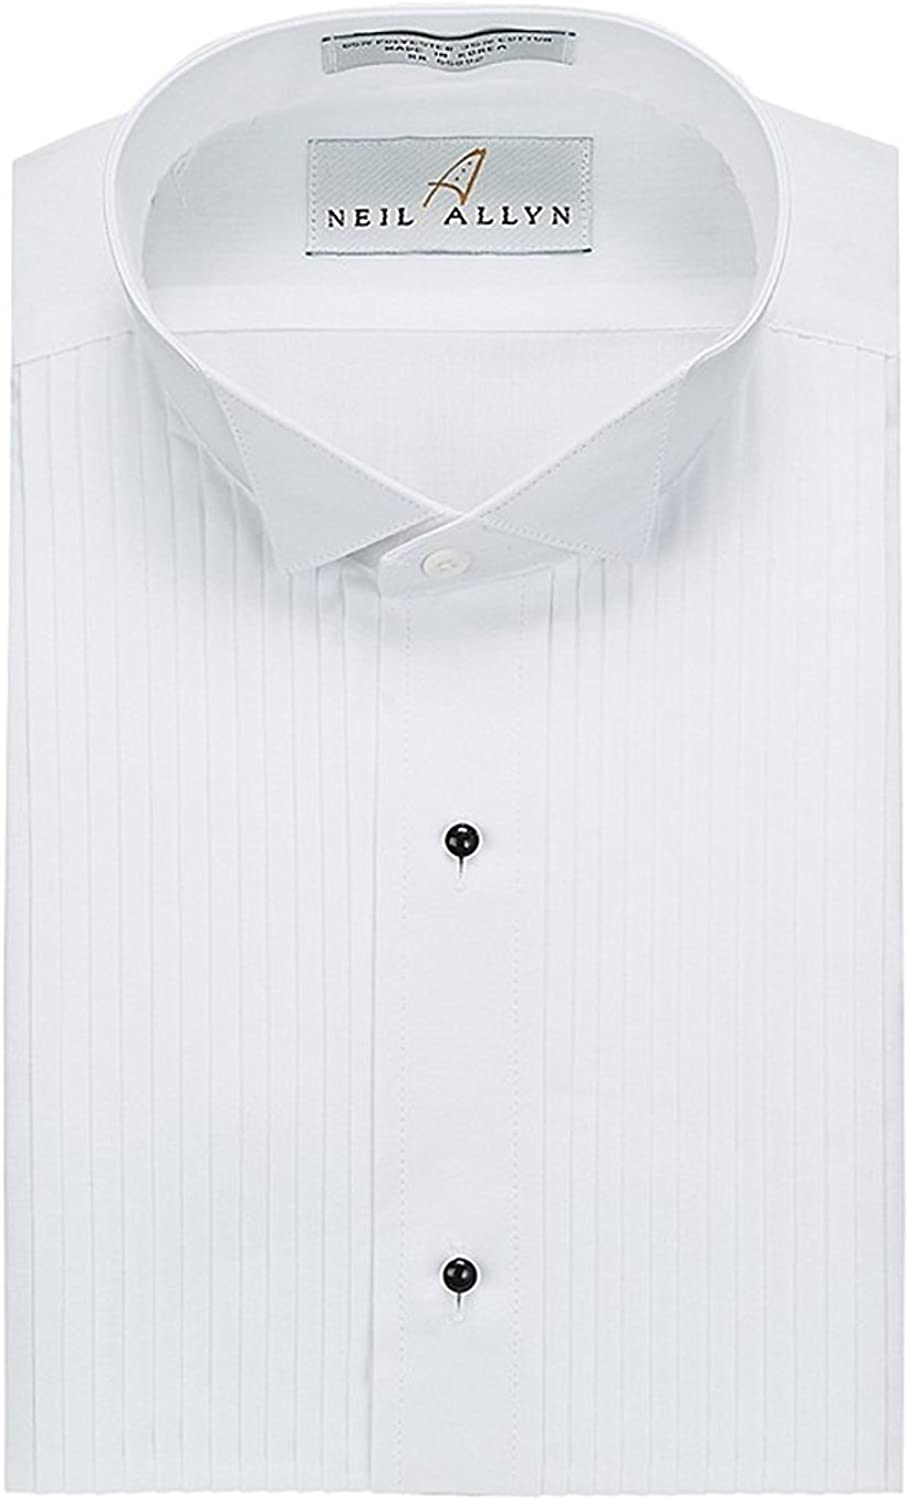 Neil Allyn Mens 100/% Cotton Tuxedo Shirt 1//4 Pleat with French Cuffs Wing Collar Slim Fit